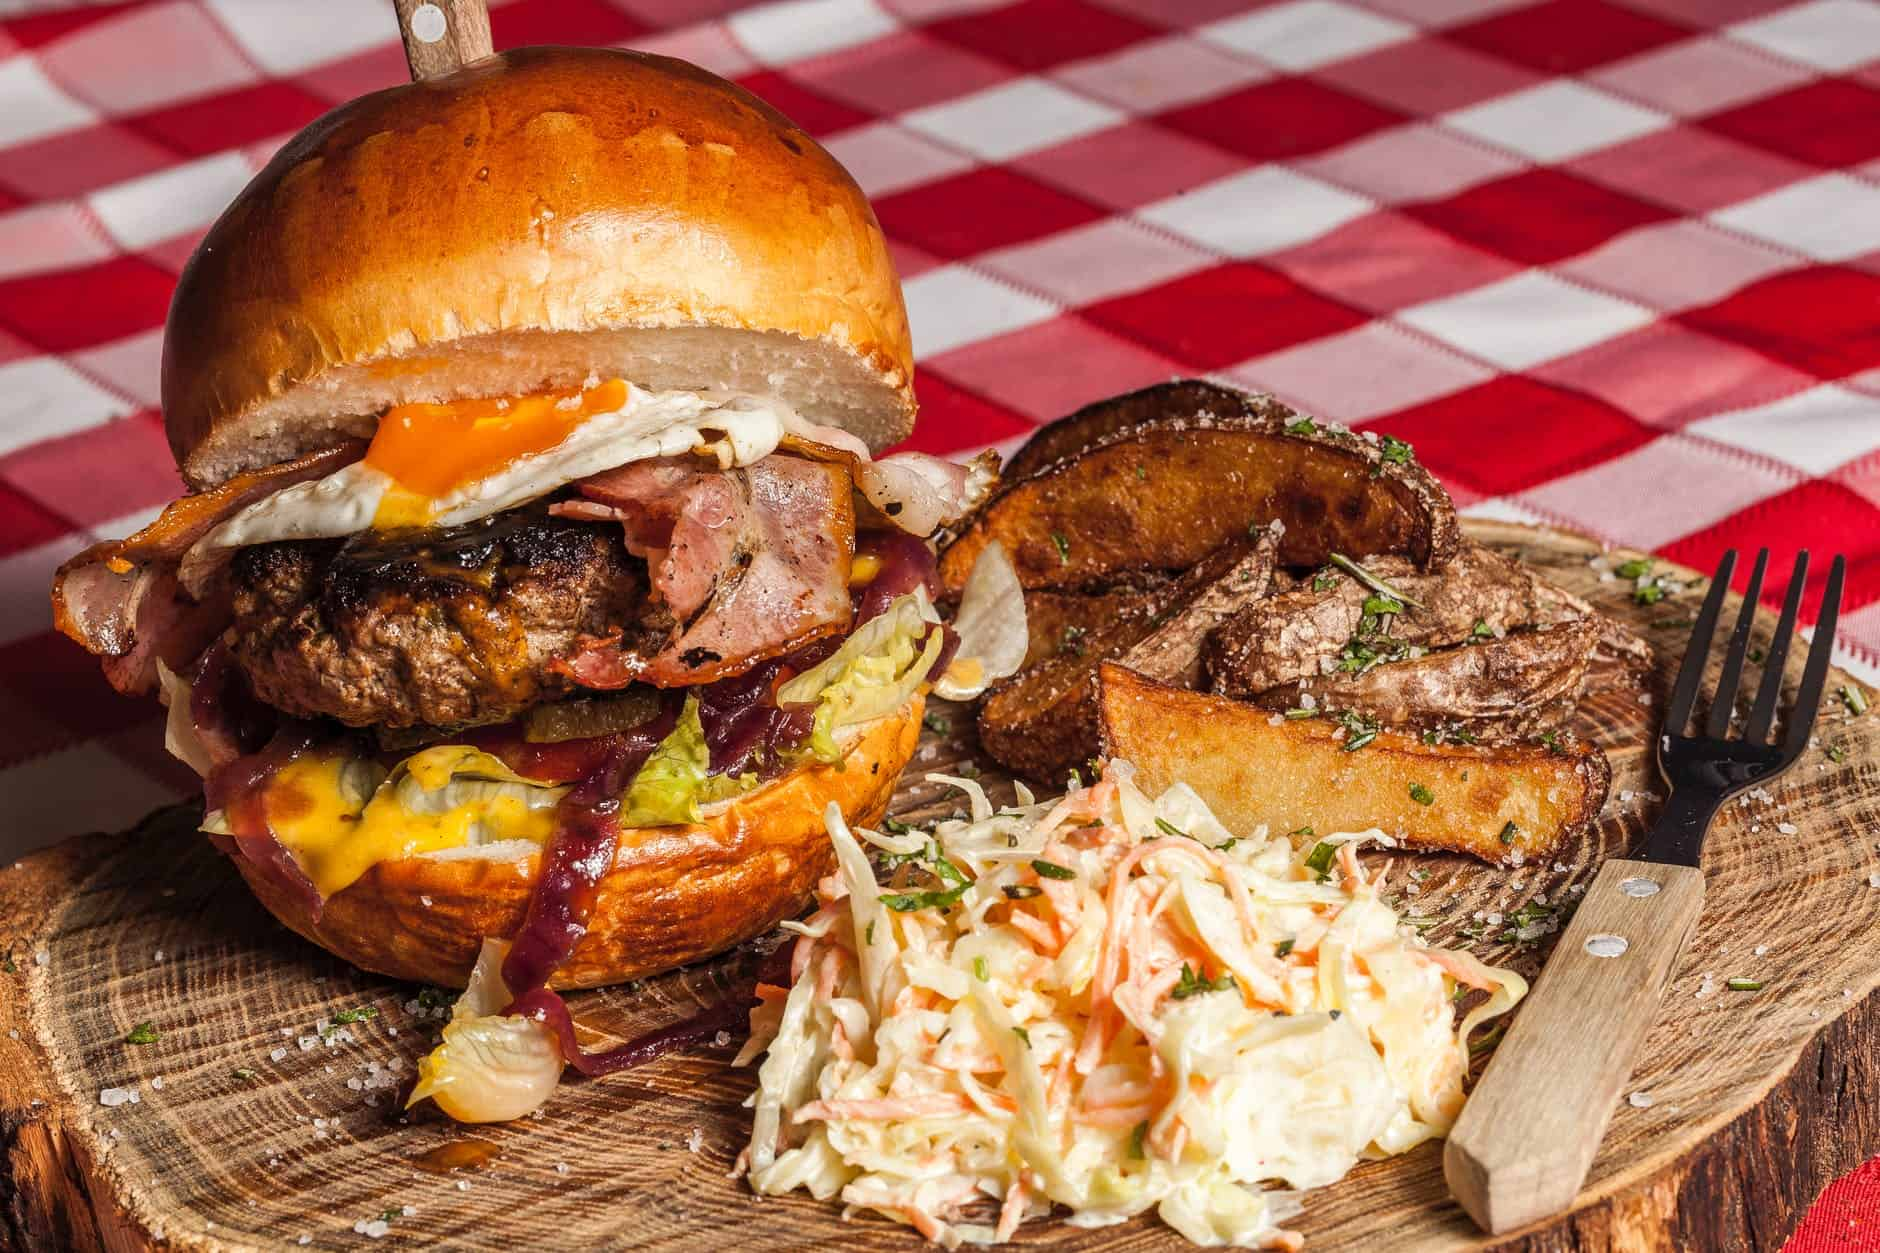 meat burger with coleslaw on side and brown handled fork